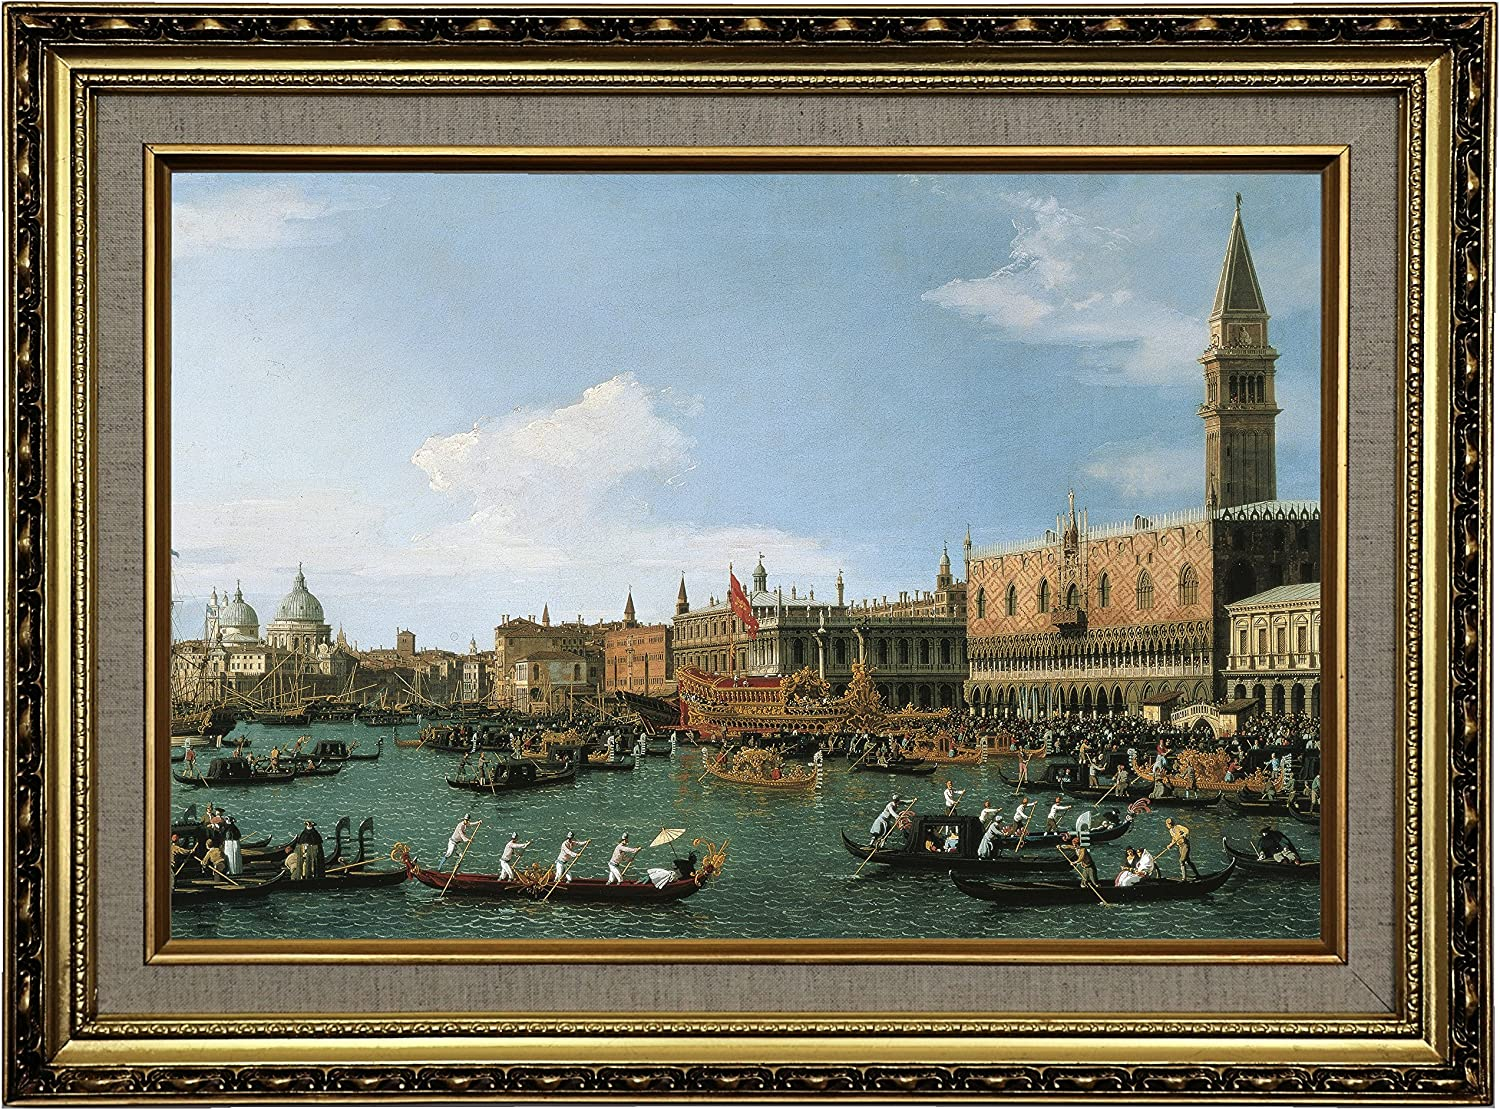 Amazon Com Historic Art Gallery Return Of Il Bucintoro On Ascension Day 1745 By Canaletto Framed Canvas Print Size 12x18 Gold Posters Prints